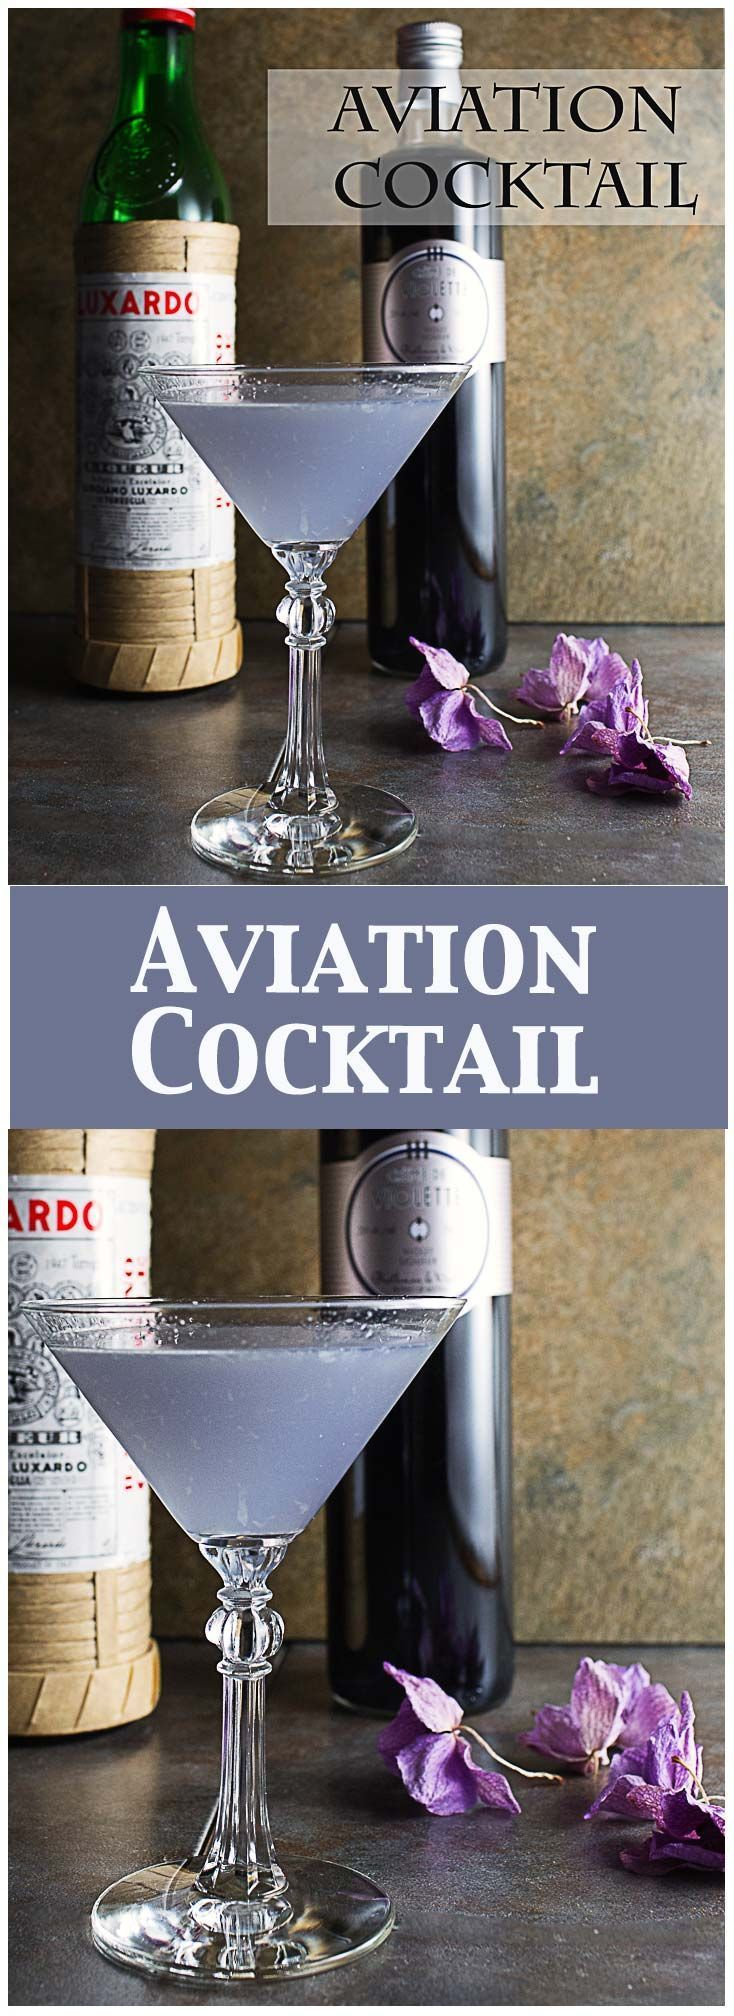 The Aviation Cocktail is a gorgeous lavender cocktail made with #gin #cremedeviolette #drinks #cocktails #gincocktails #maraschinoliqueur